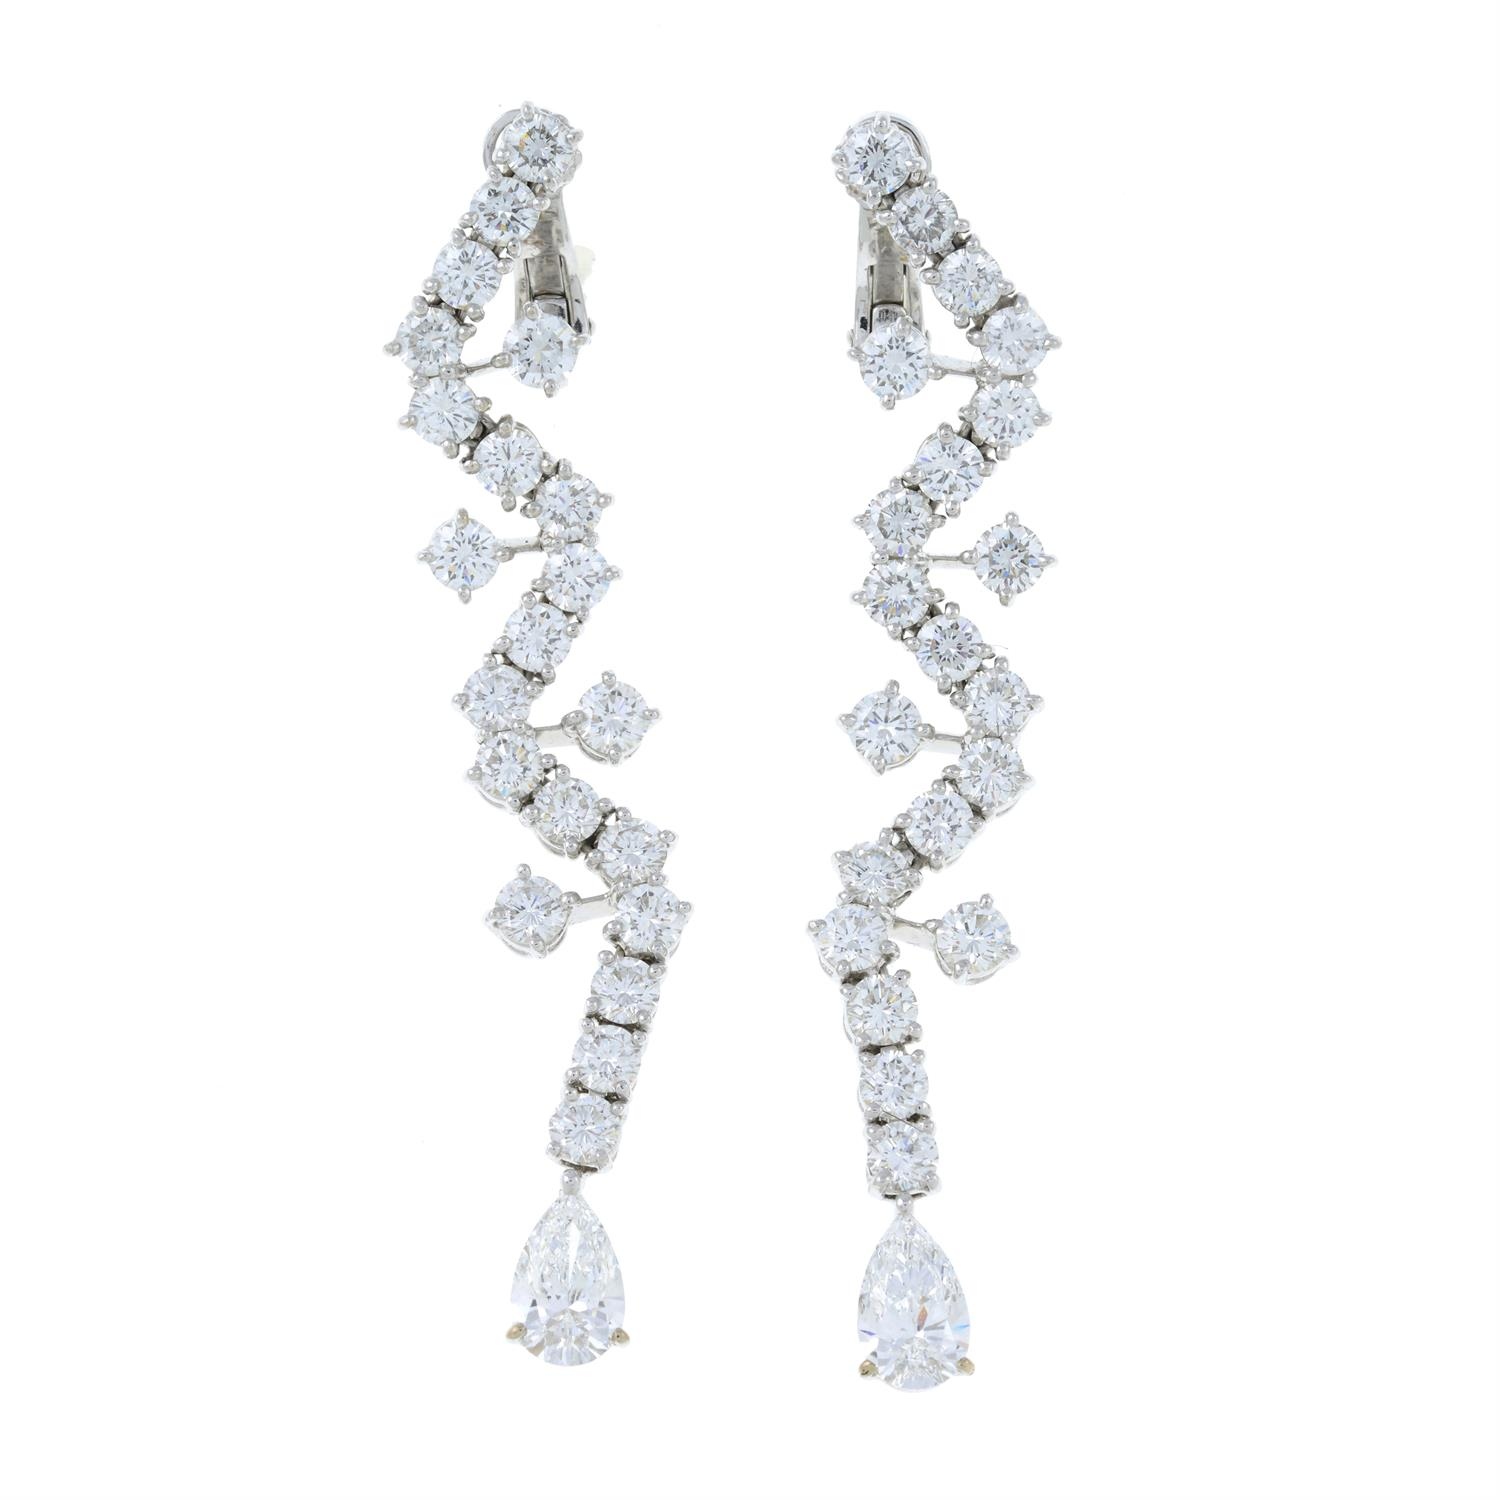 A pair of 18ct gold brilliant-cut diamond earrings, with pear-shape diamond terminals, - Image 2 of 6